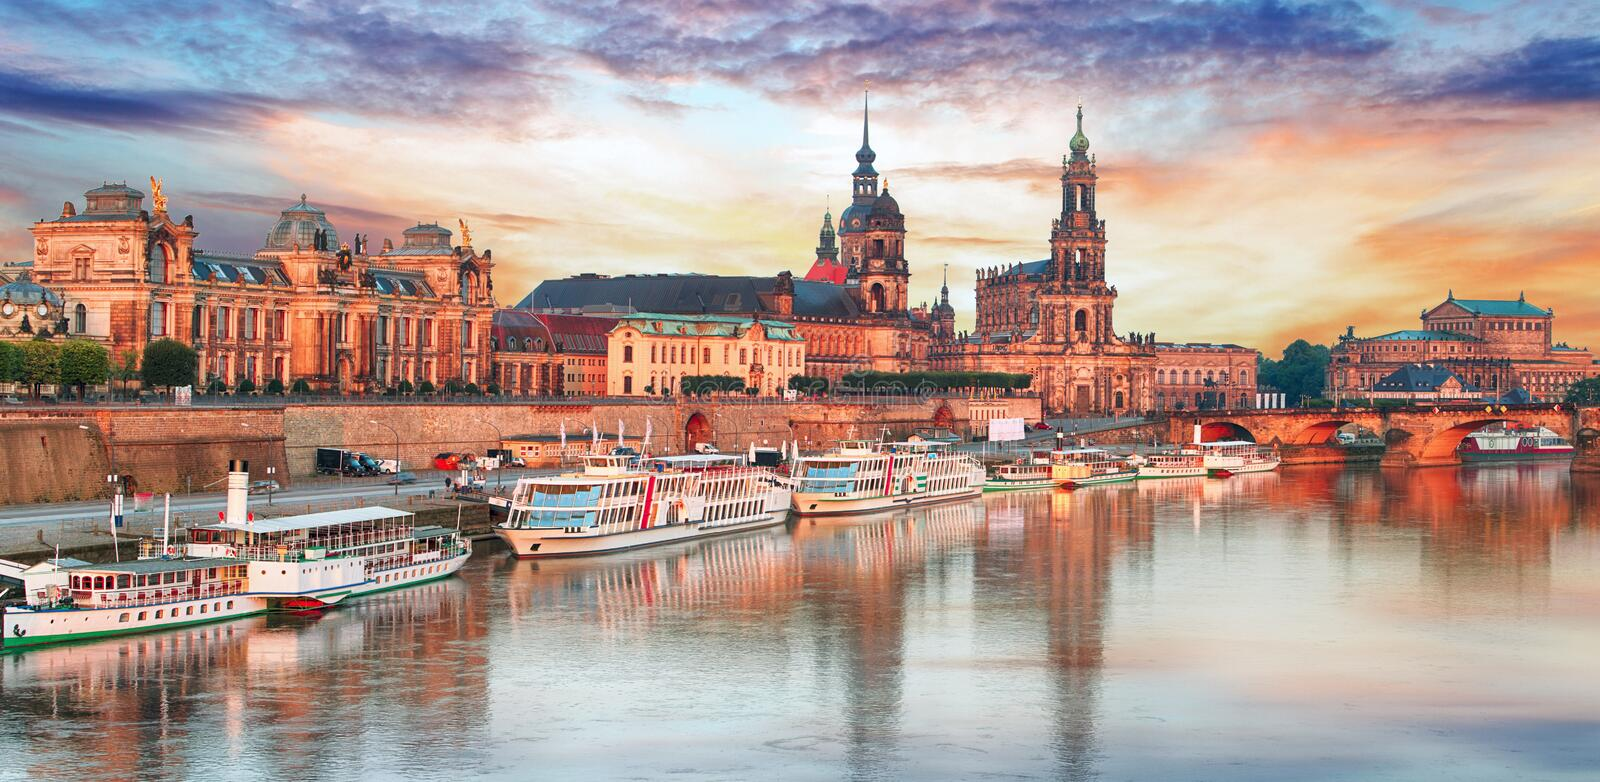 Dresden panorama at sunset, Germany.  royalty free stock photos